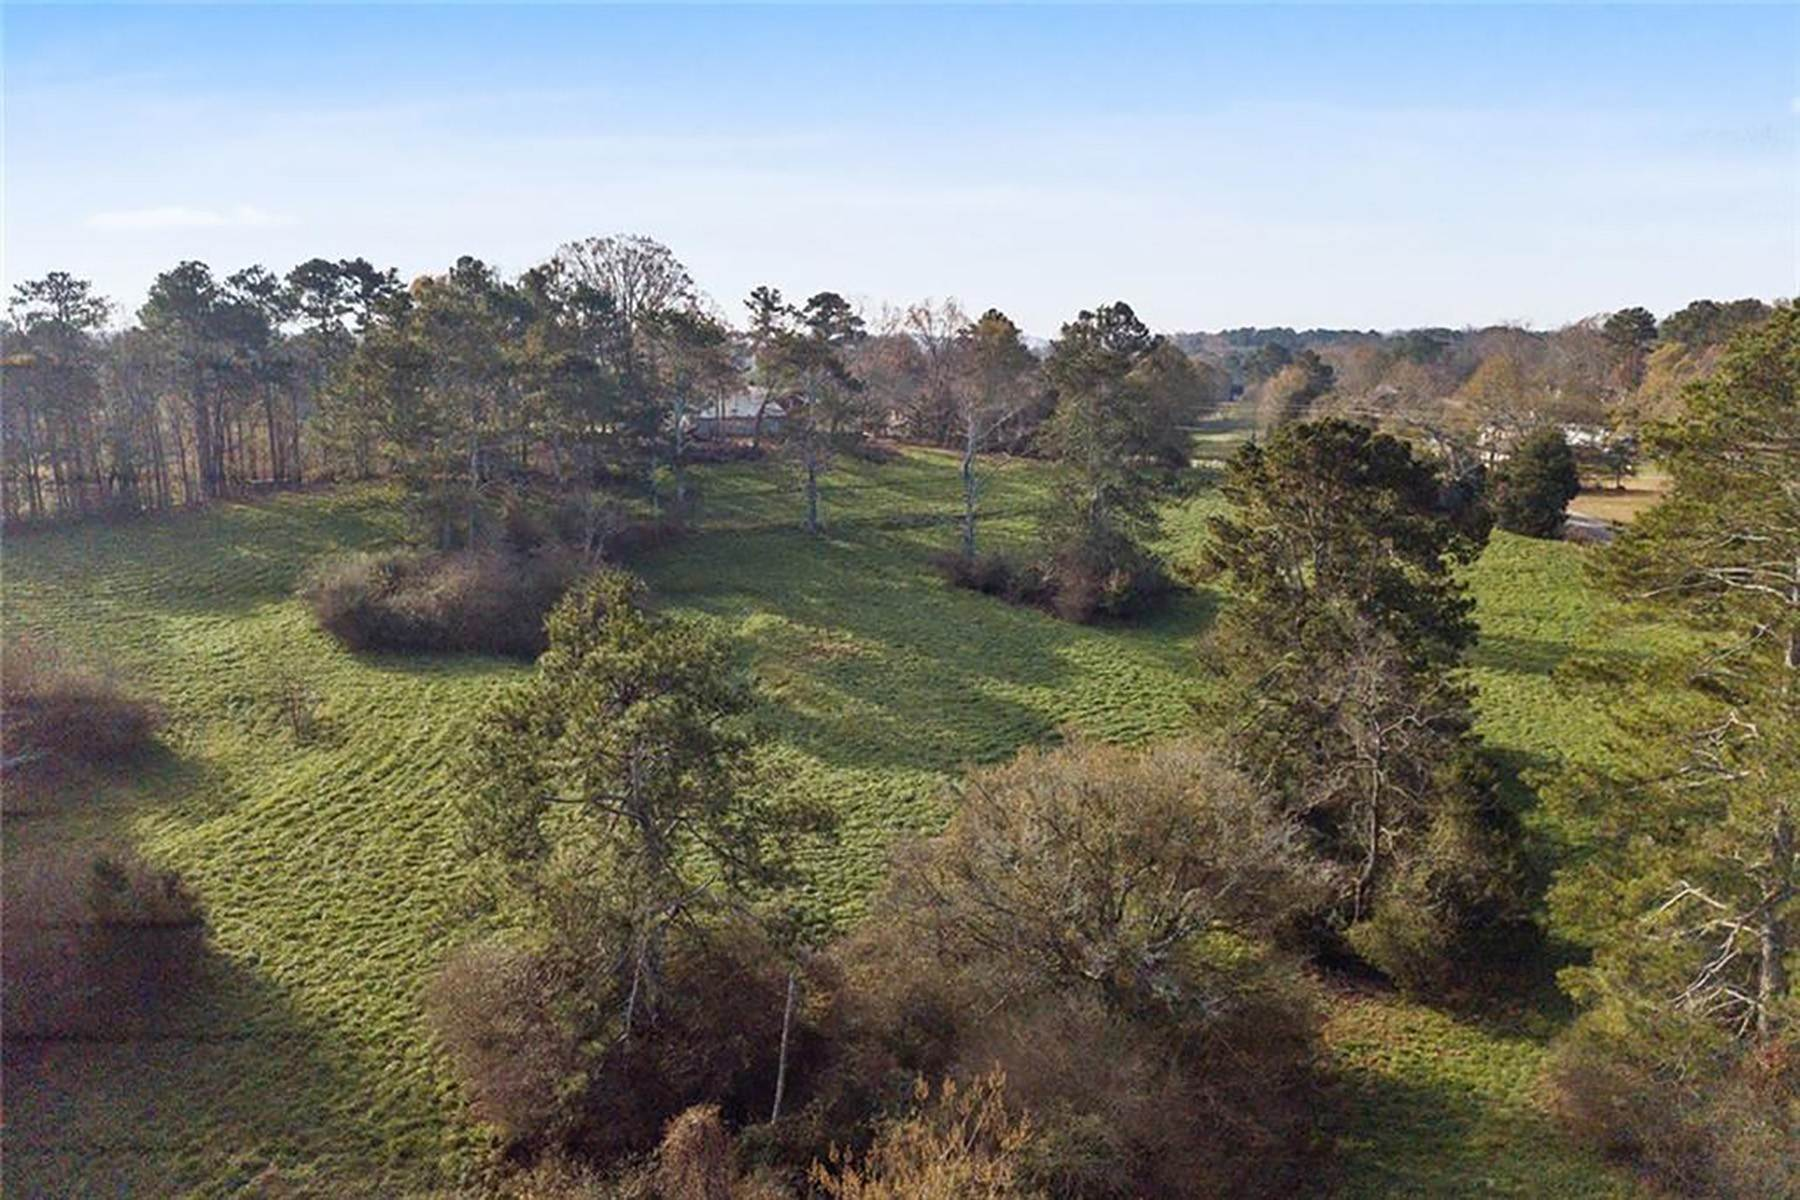 Land for Sale at Picturesque Estate Acreage in Prime Southeast Cherokee County Location 230 Old Lathemtown Road Canton, Georgia 30115 United States